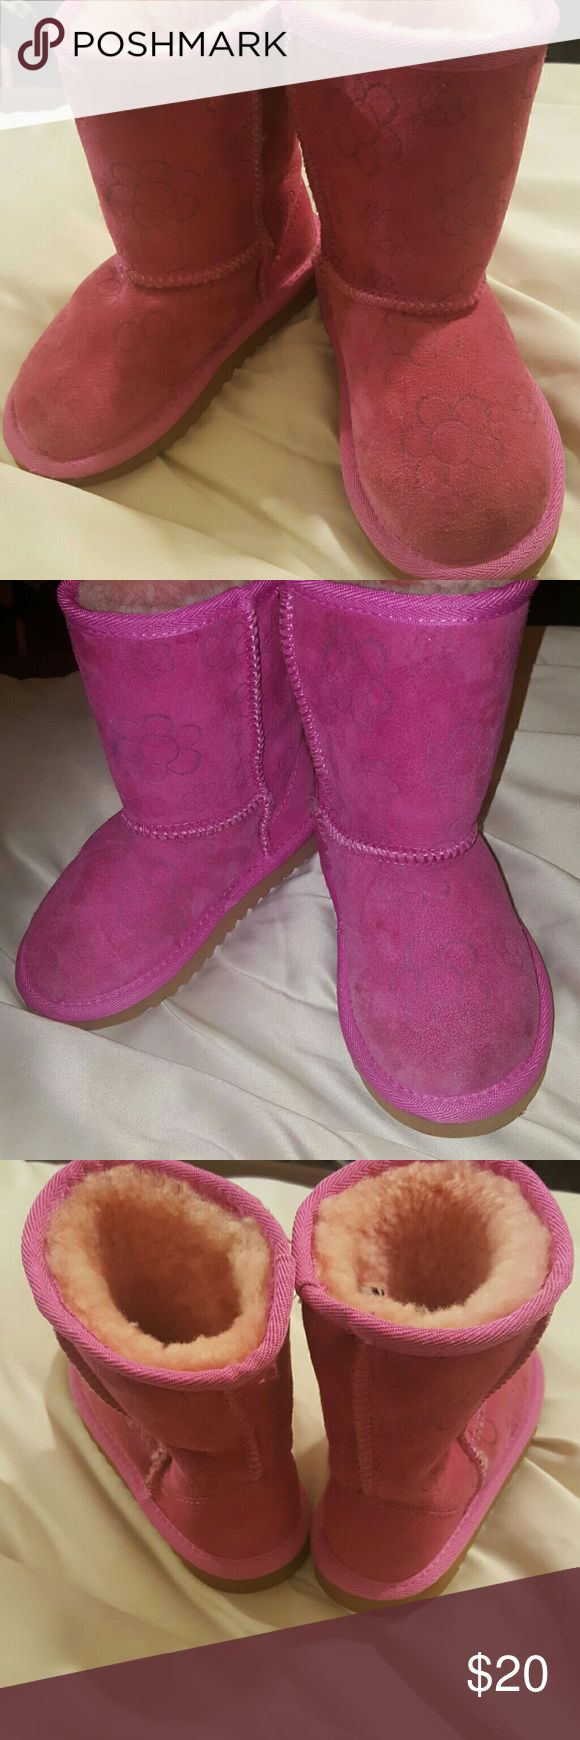 Costco kirkland Pink boots kids size10 Costco kirkland Pink sheepskin boots for kids size 10. My daughter wore and said they were too warm. ???? Costco kirkland  Shoes Ankle Boots & Booties